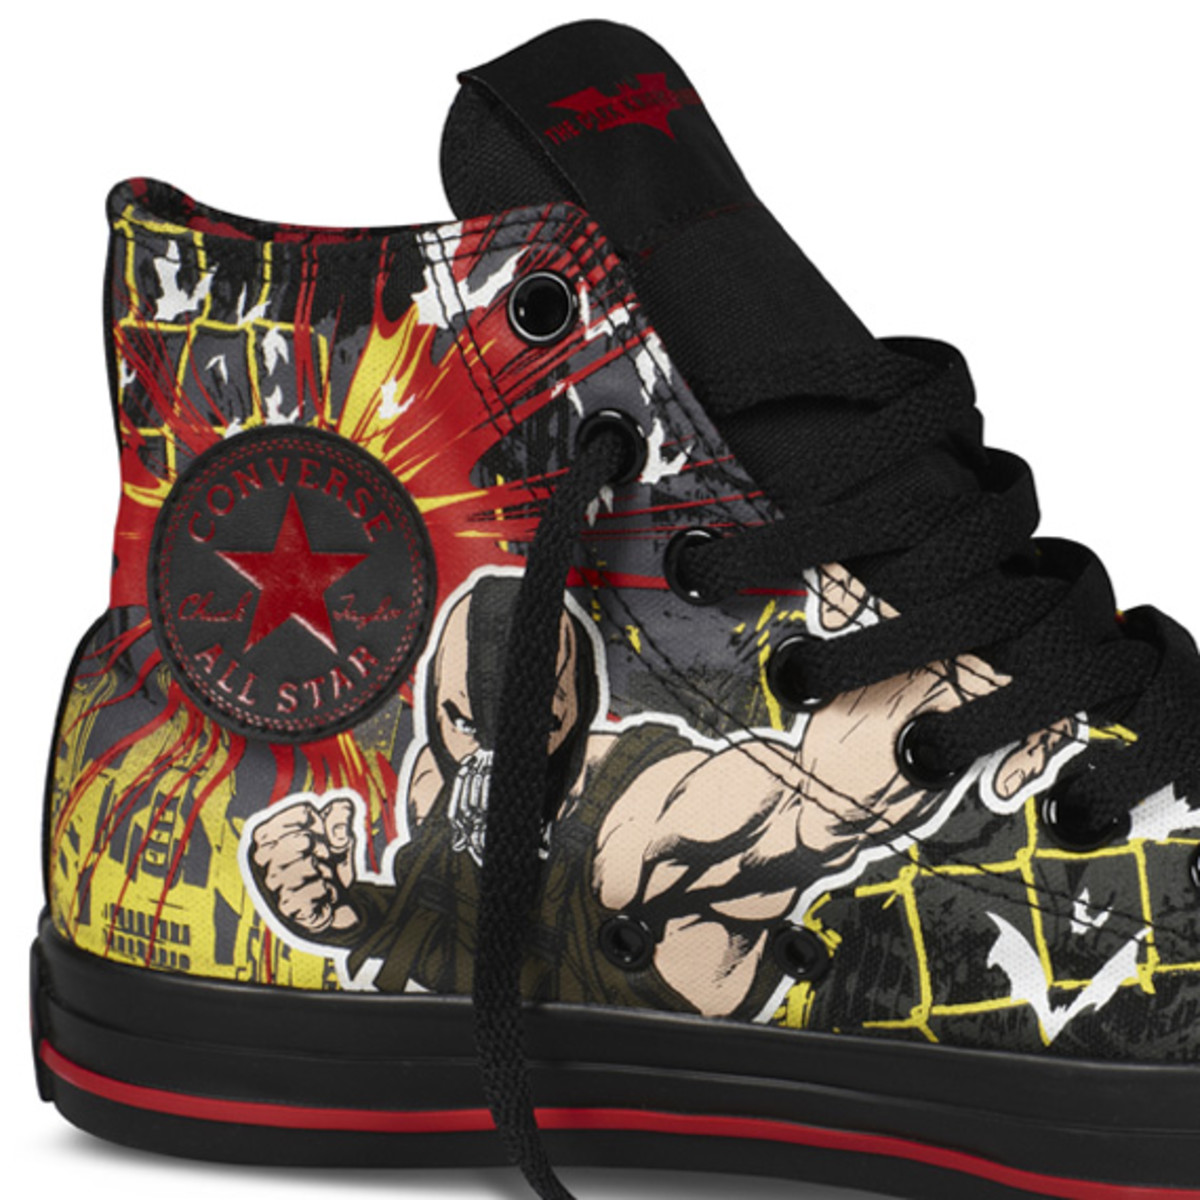 the-dark-knight-rises-converse-chuck-taylor-all-star-collection-08